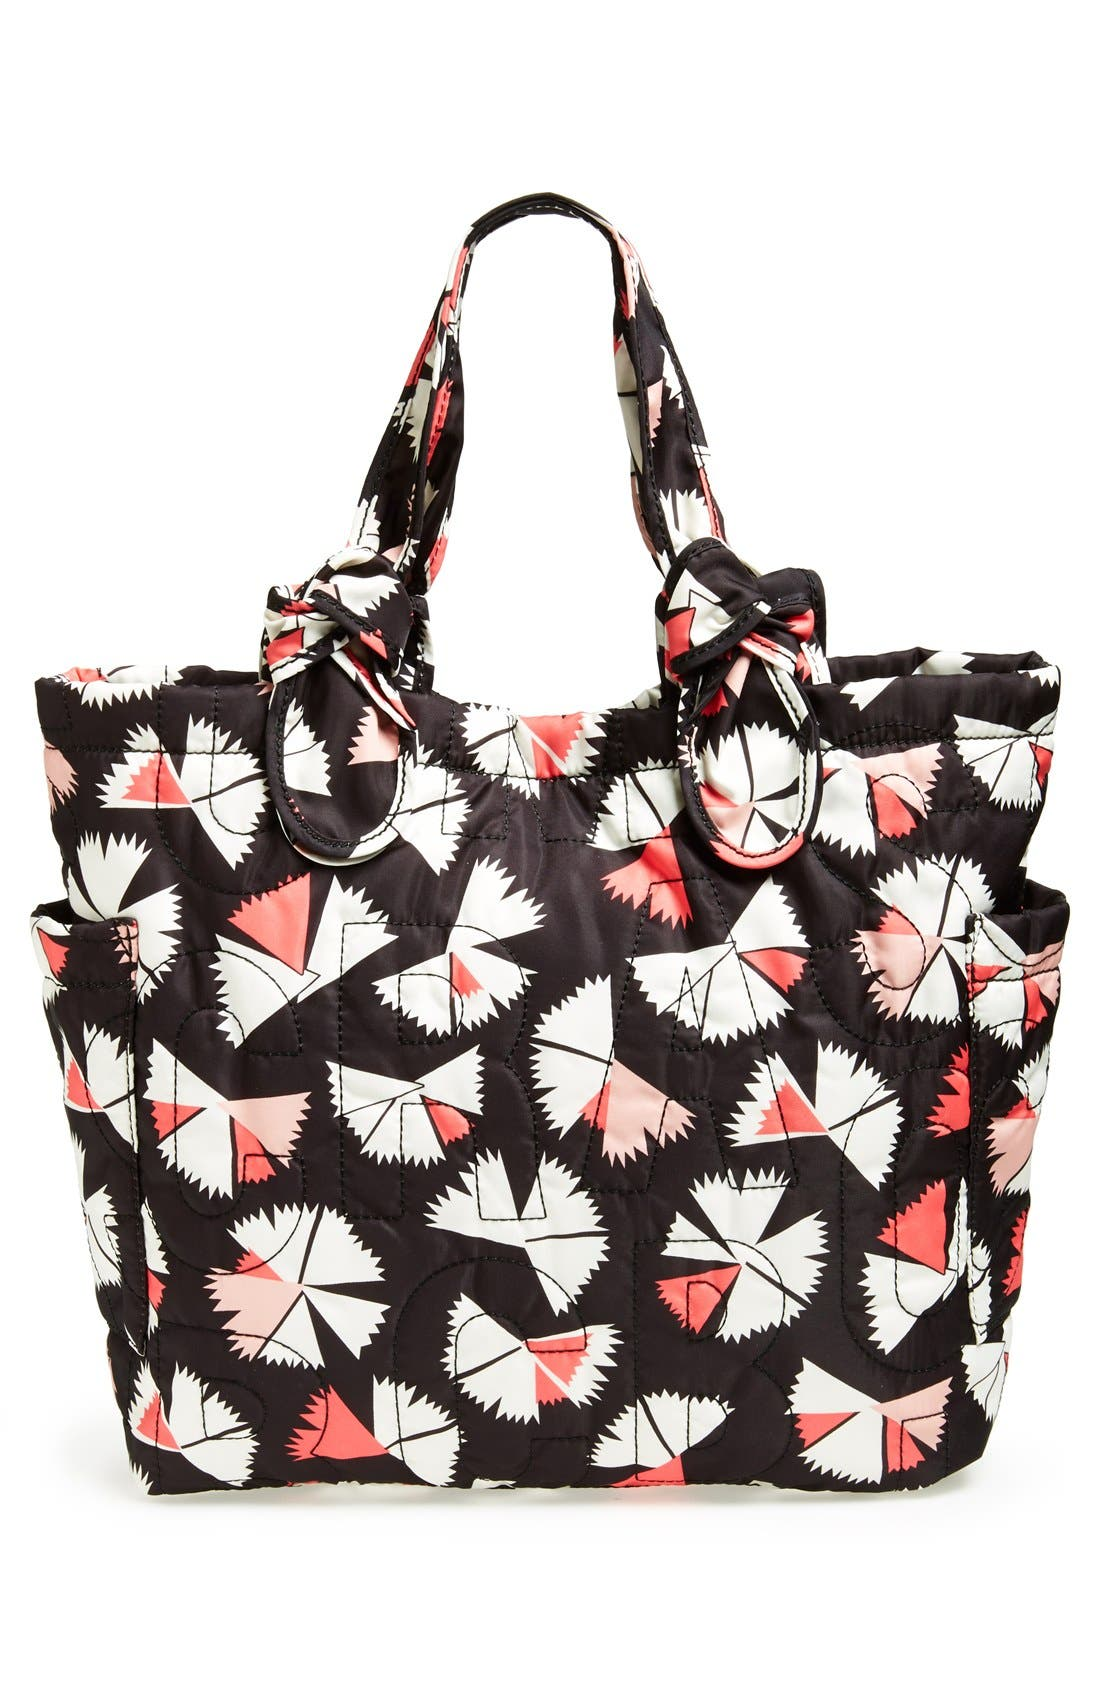 MARC BY MARC JACOBS 'Medium Tate' Tote,                             Alternate thumbnail 3, color,                             001